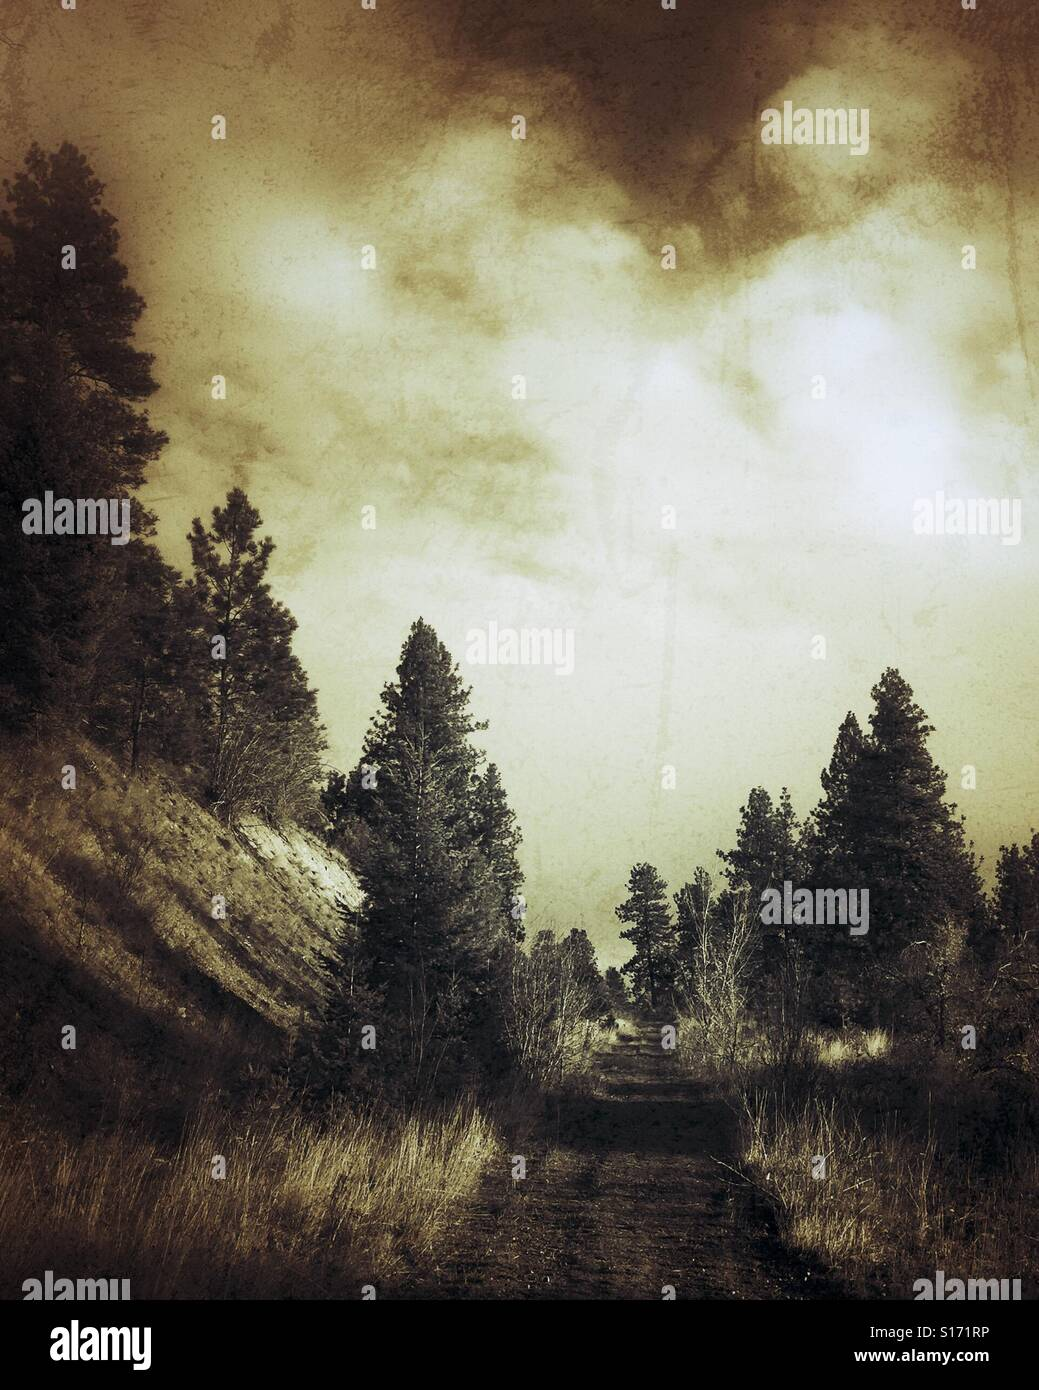 A trail in the forest, surrounded by evergreen trees. Distressed image in sepia tones. Stock Photo